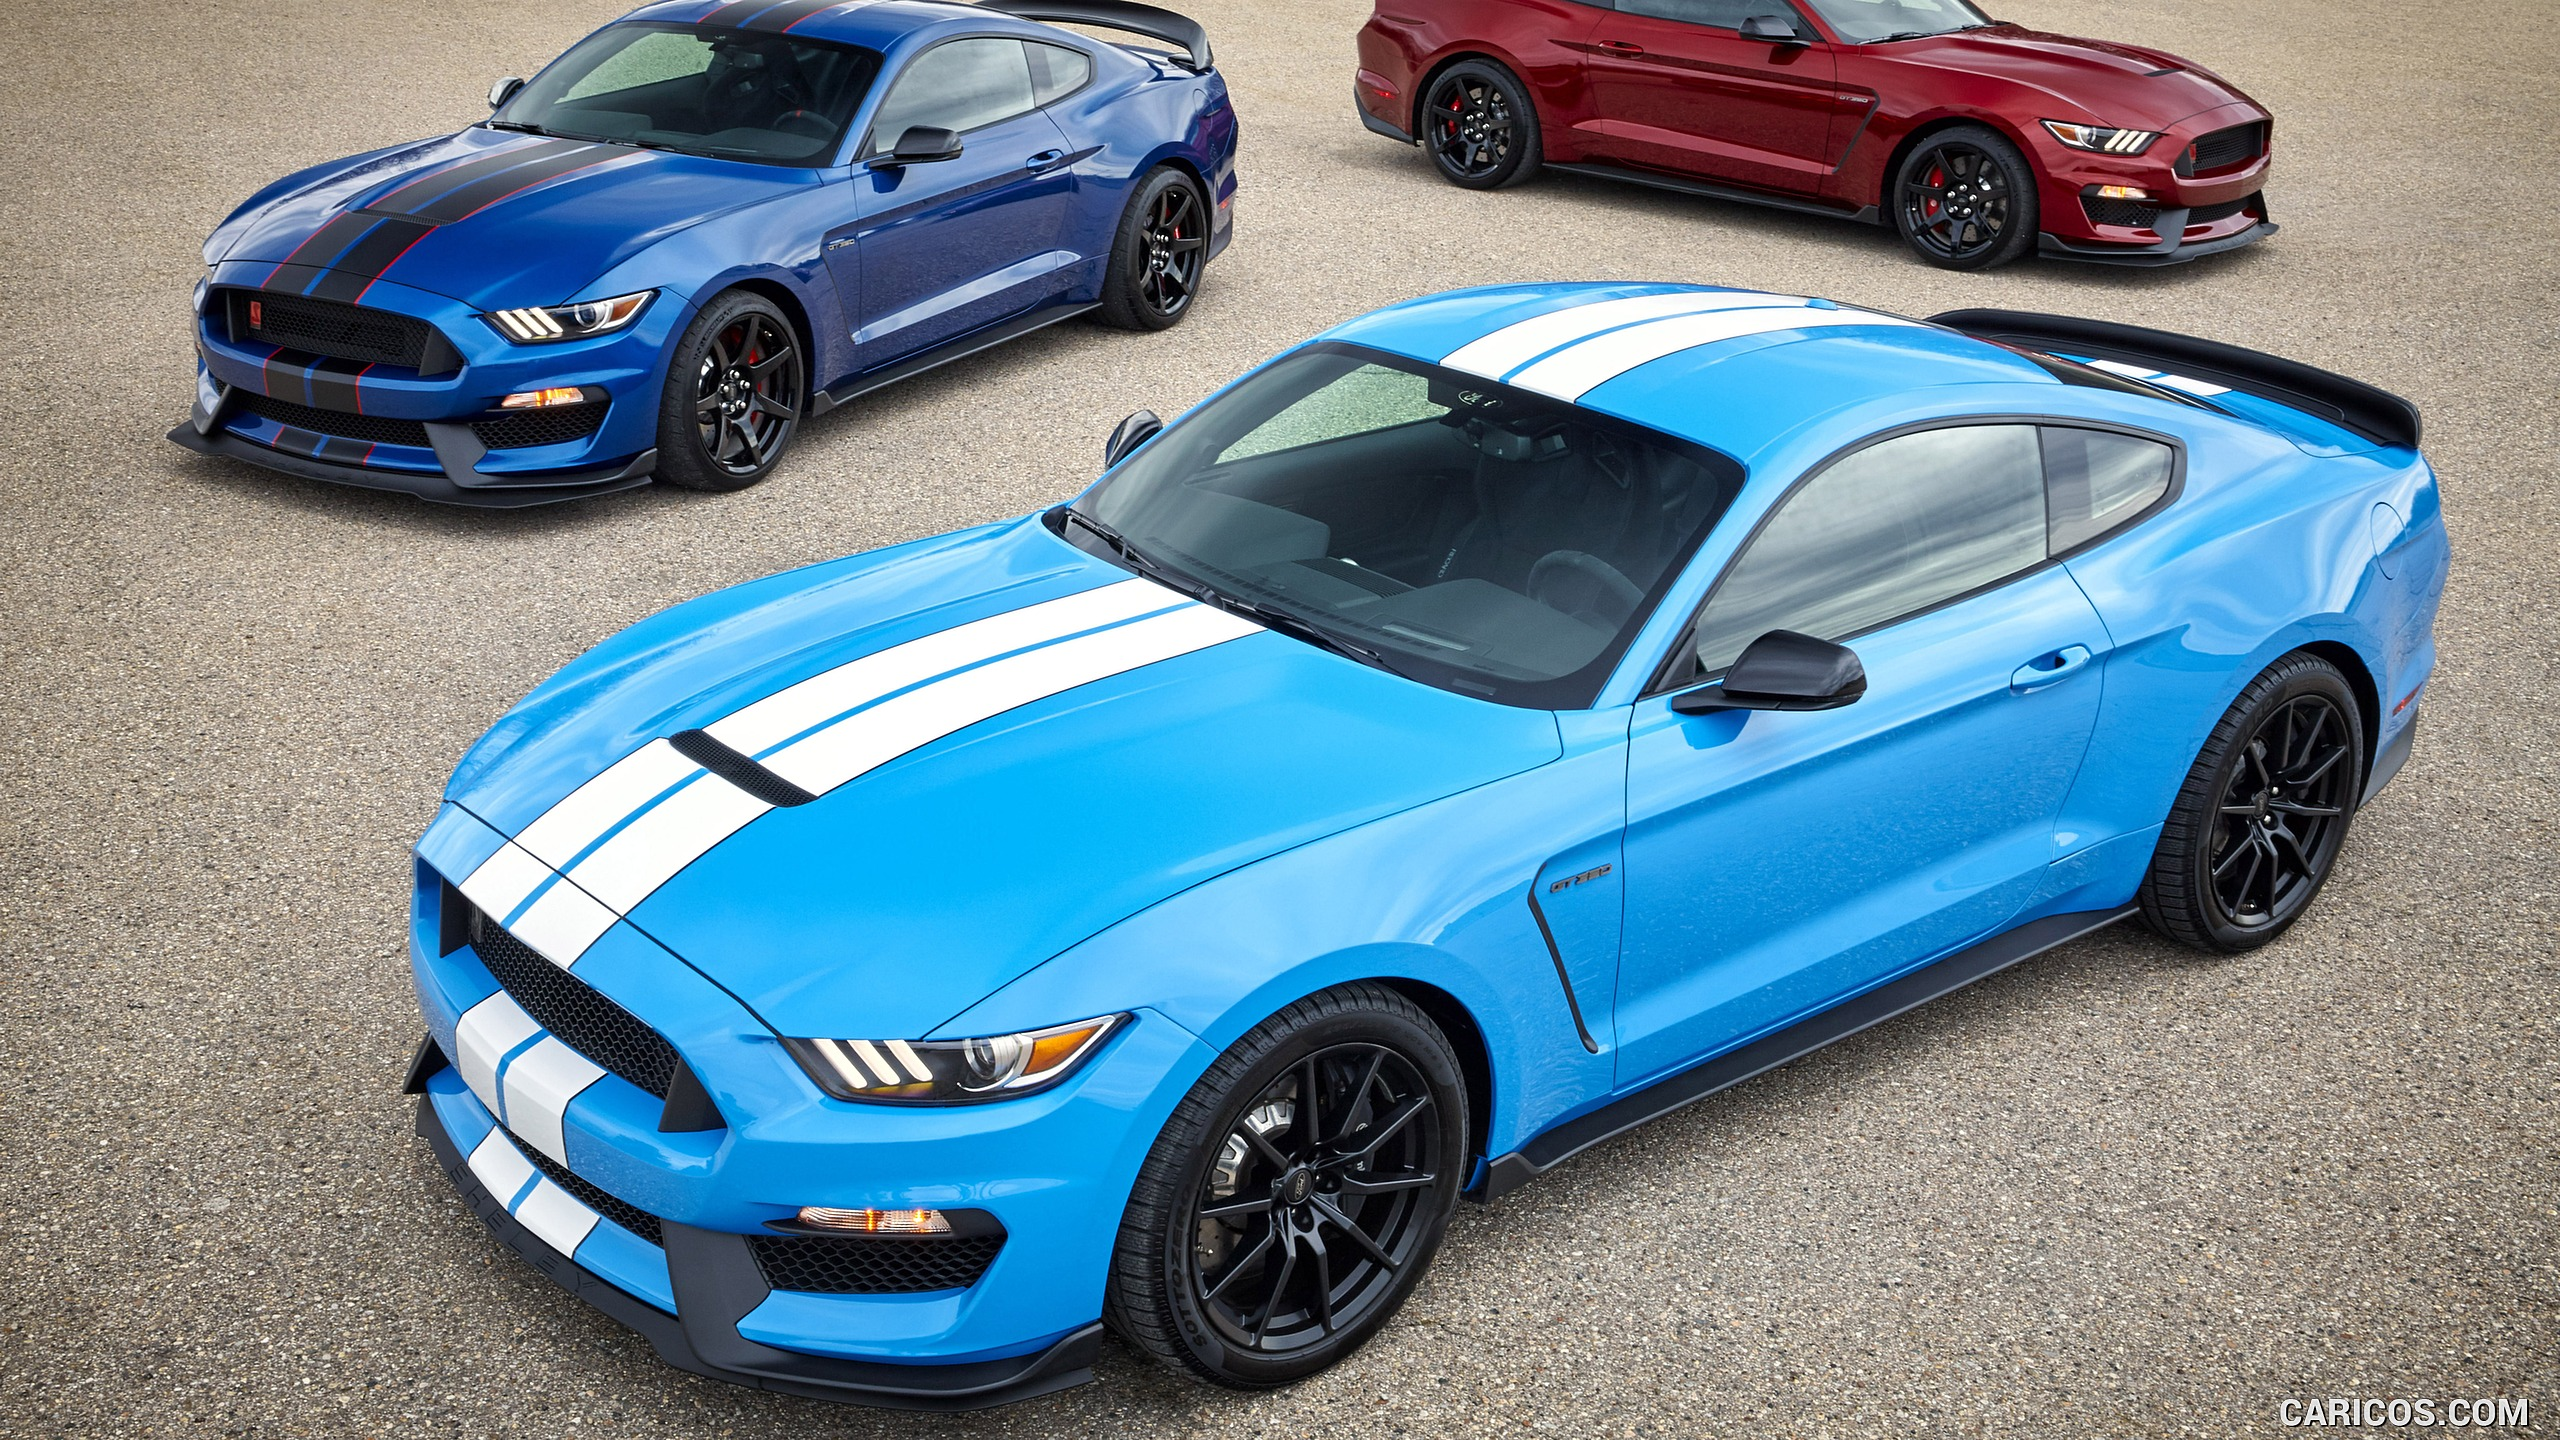 2560x1440 - Shelby Mustang GT 350 Wallpapers 24